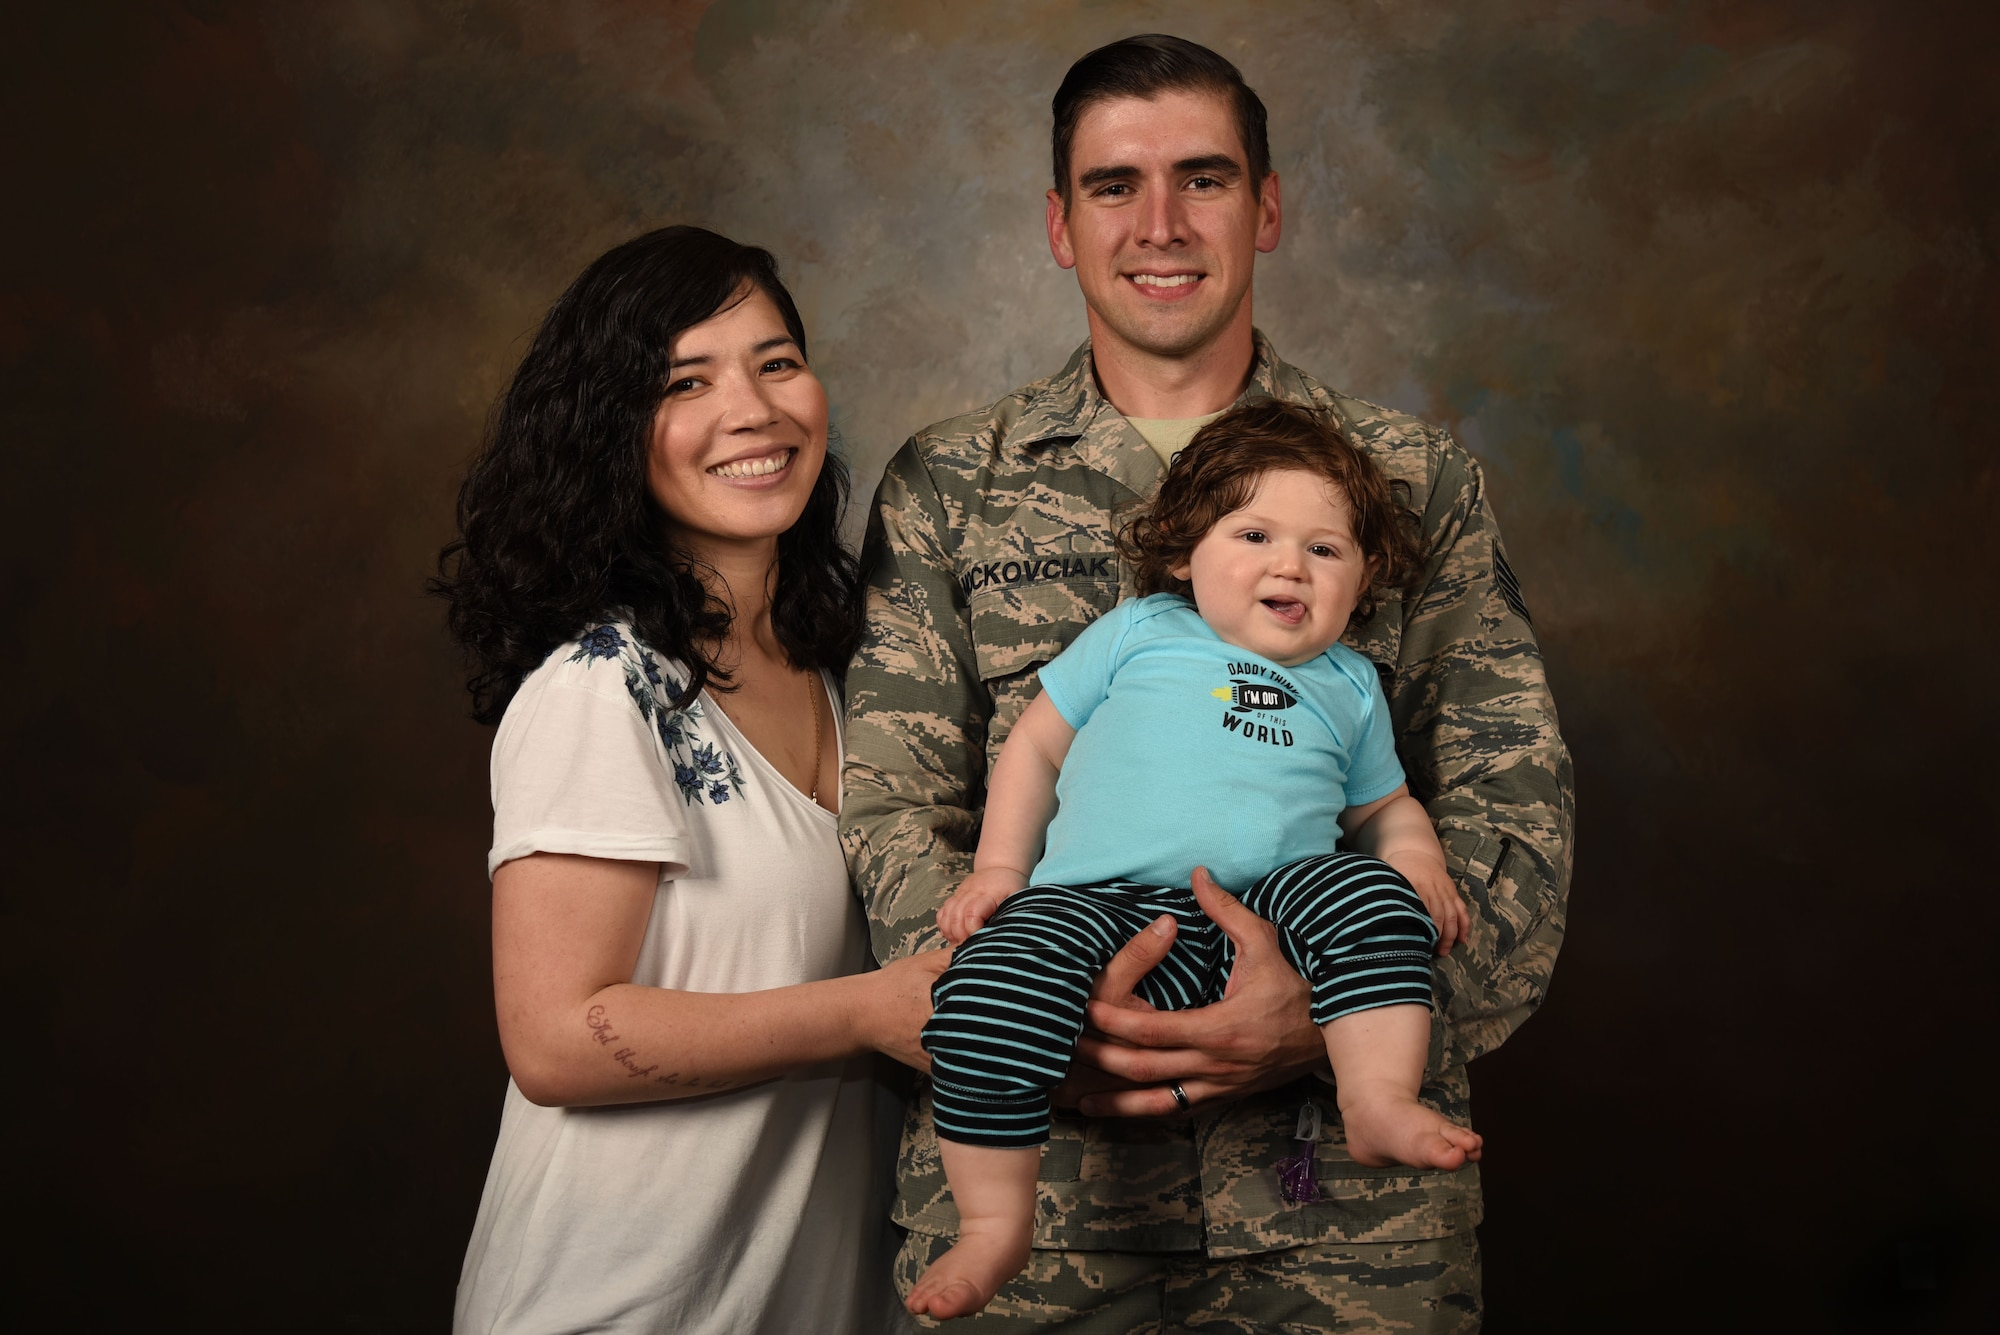 U.S. Air Force Tech. Sgt. Ben Mockovciak, 372nd Training Squadron Detachment 202 F-16 tactical aircraft maintenance instructor, right, and Ashley Mockovciak, Team Shaw spouse, left, stand with their son, Noah Mockovciak, at Shaw Air Force Base, S.C., April 24, 2018.